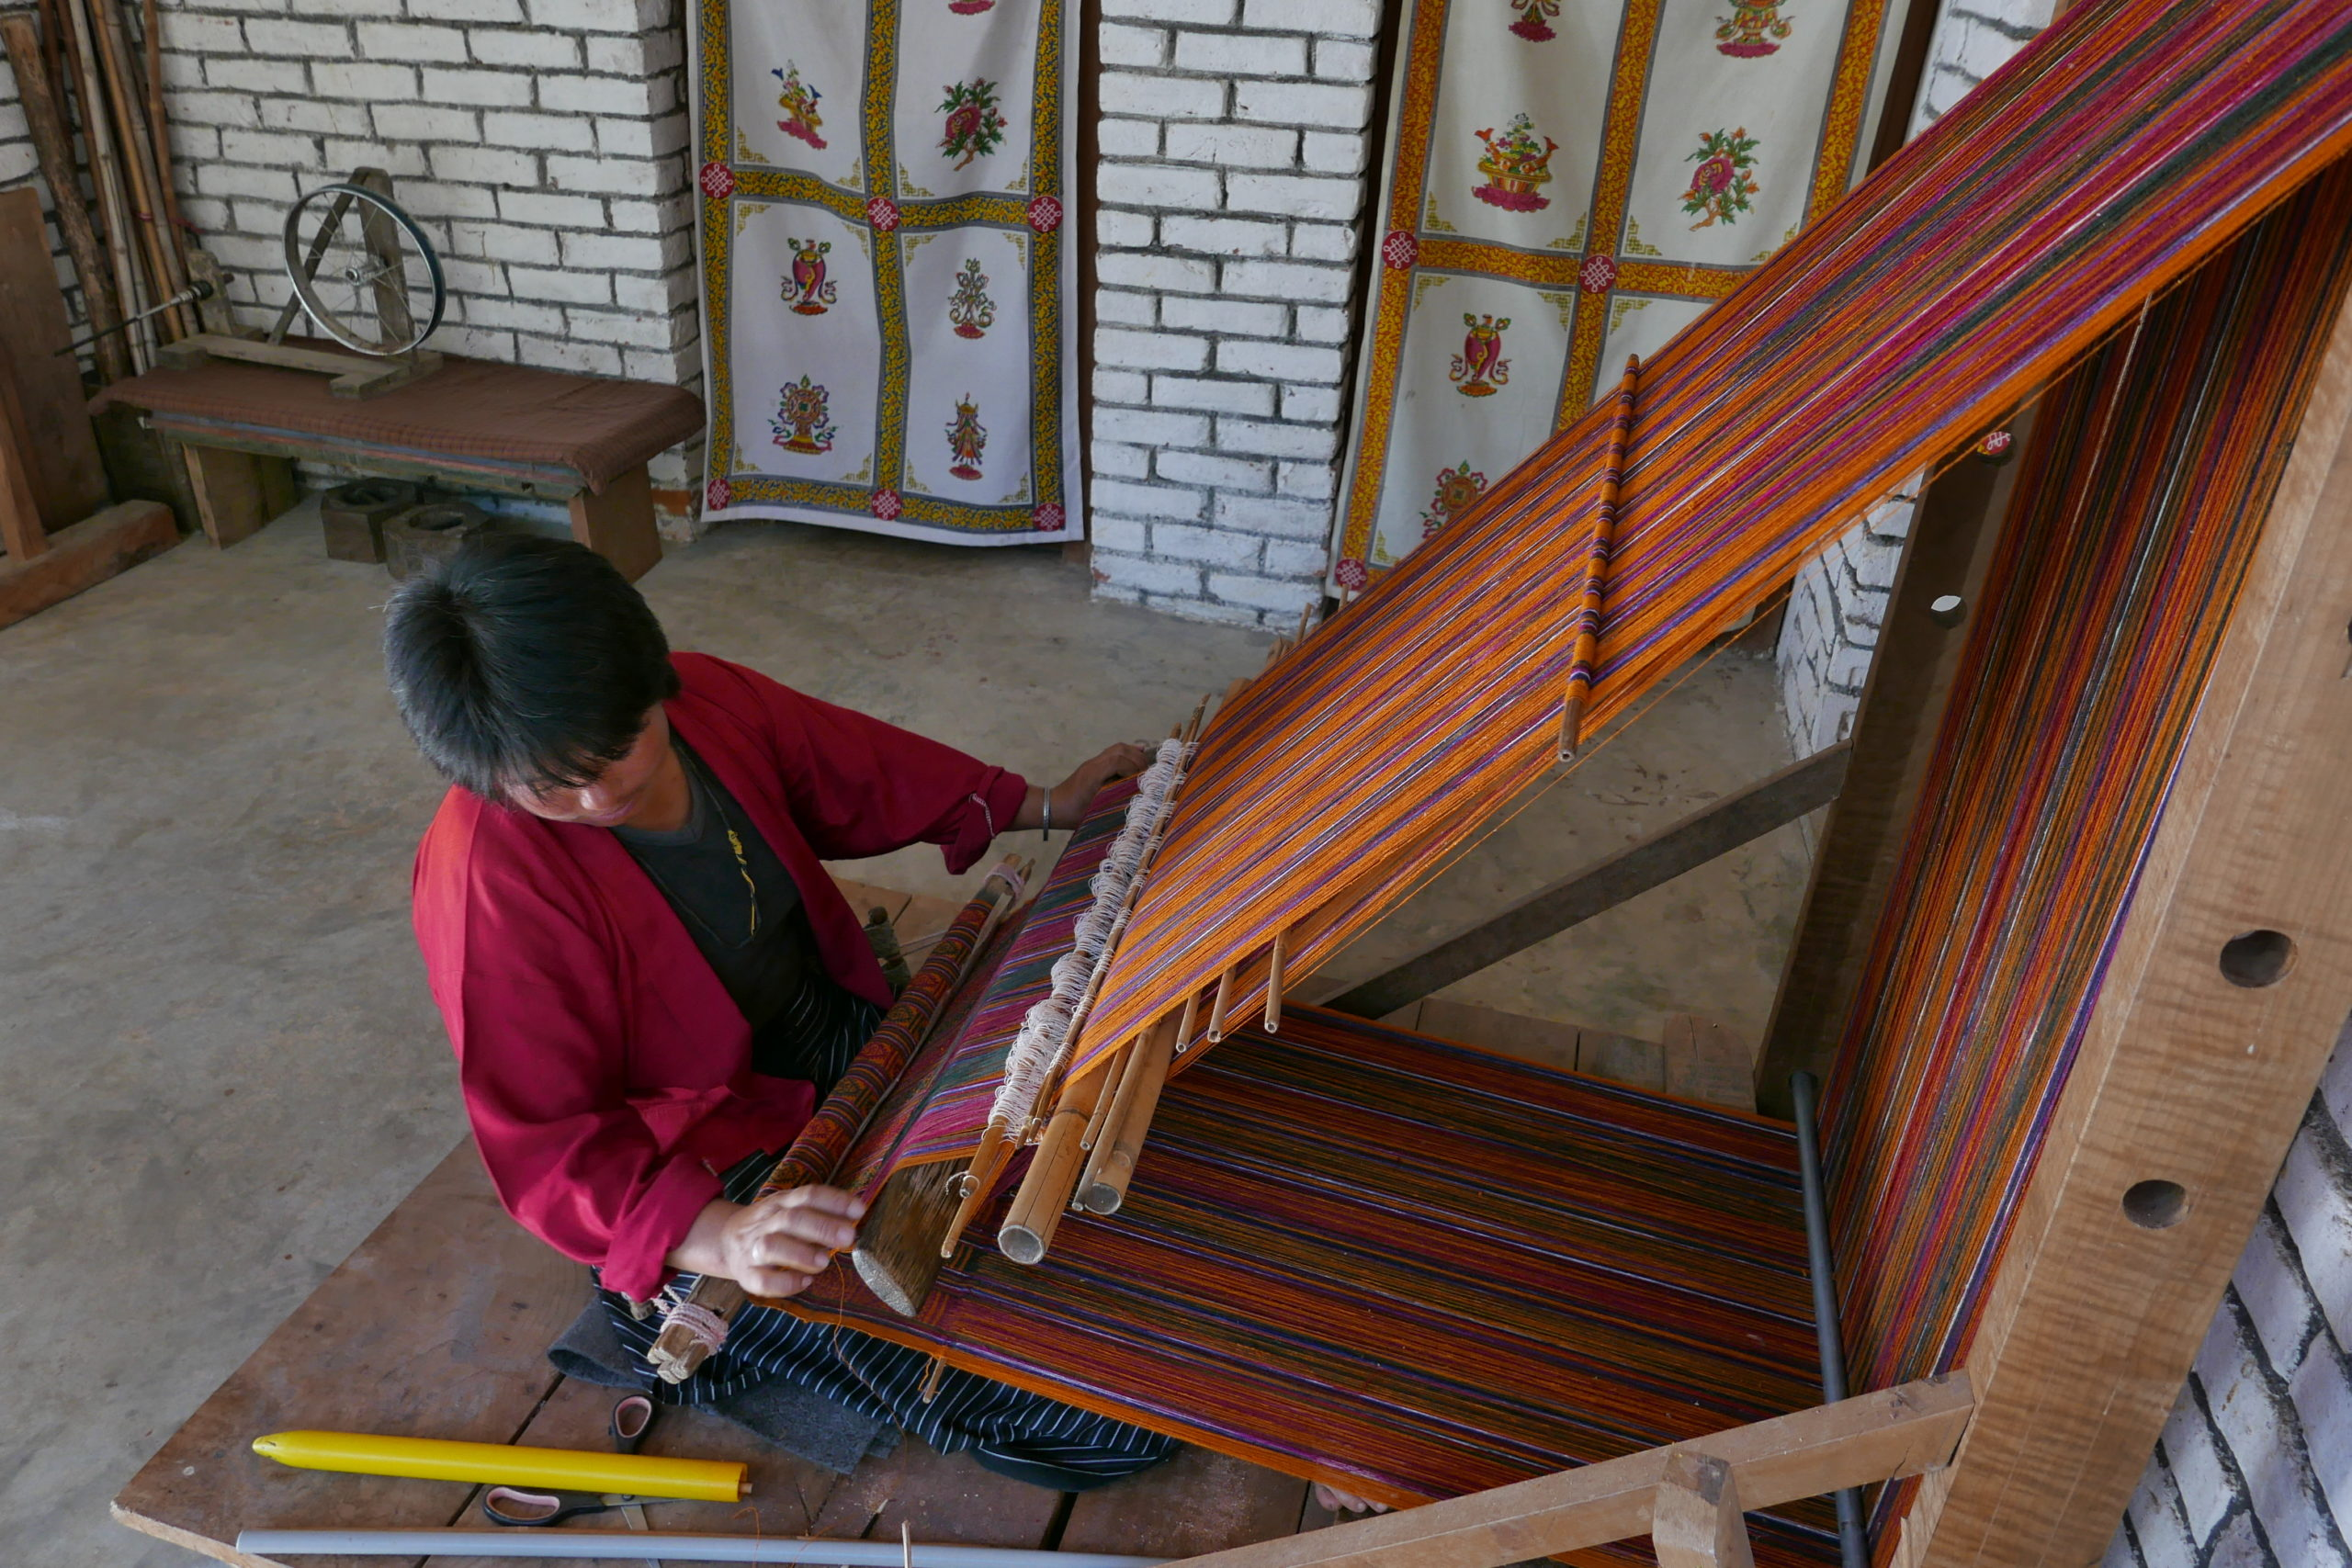 A woman weaving on a flexible loom.